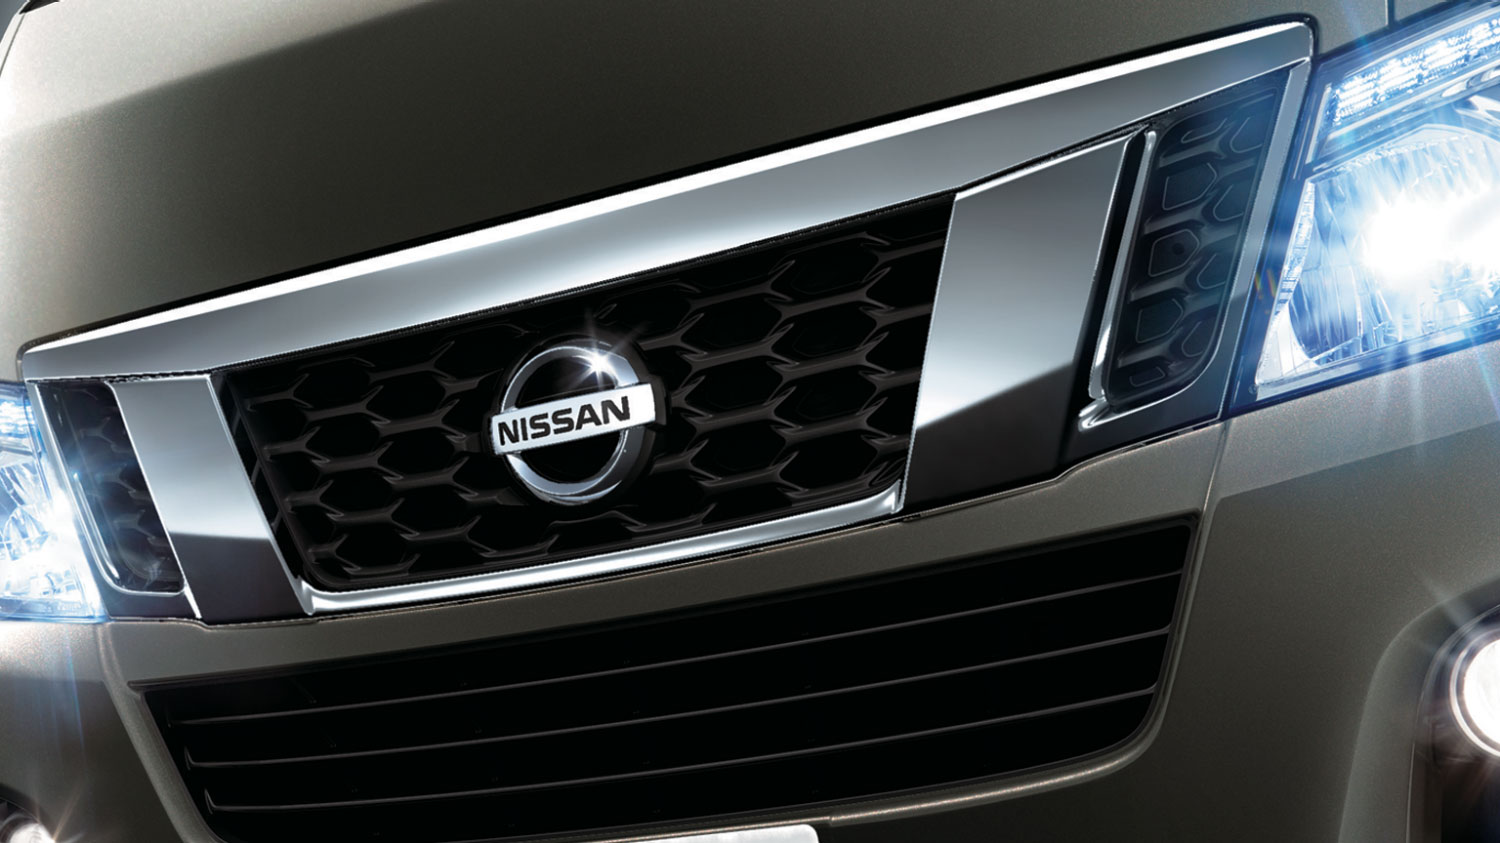 Nissan grill and logo